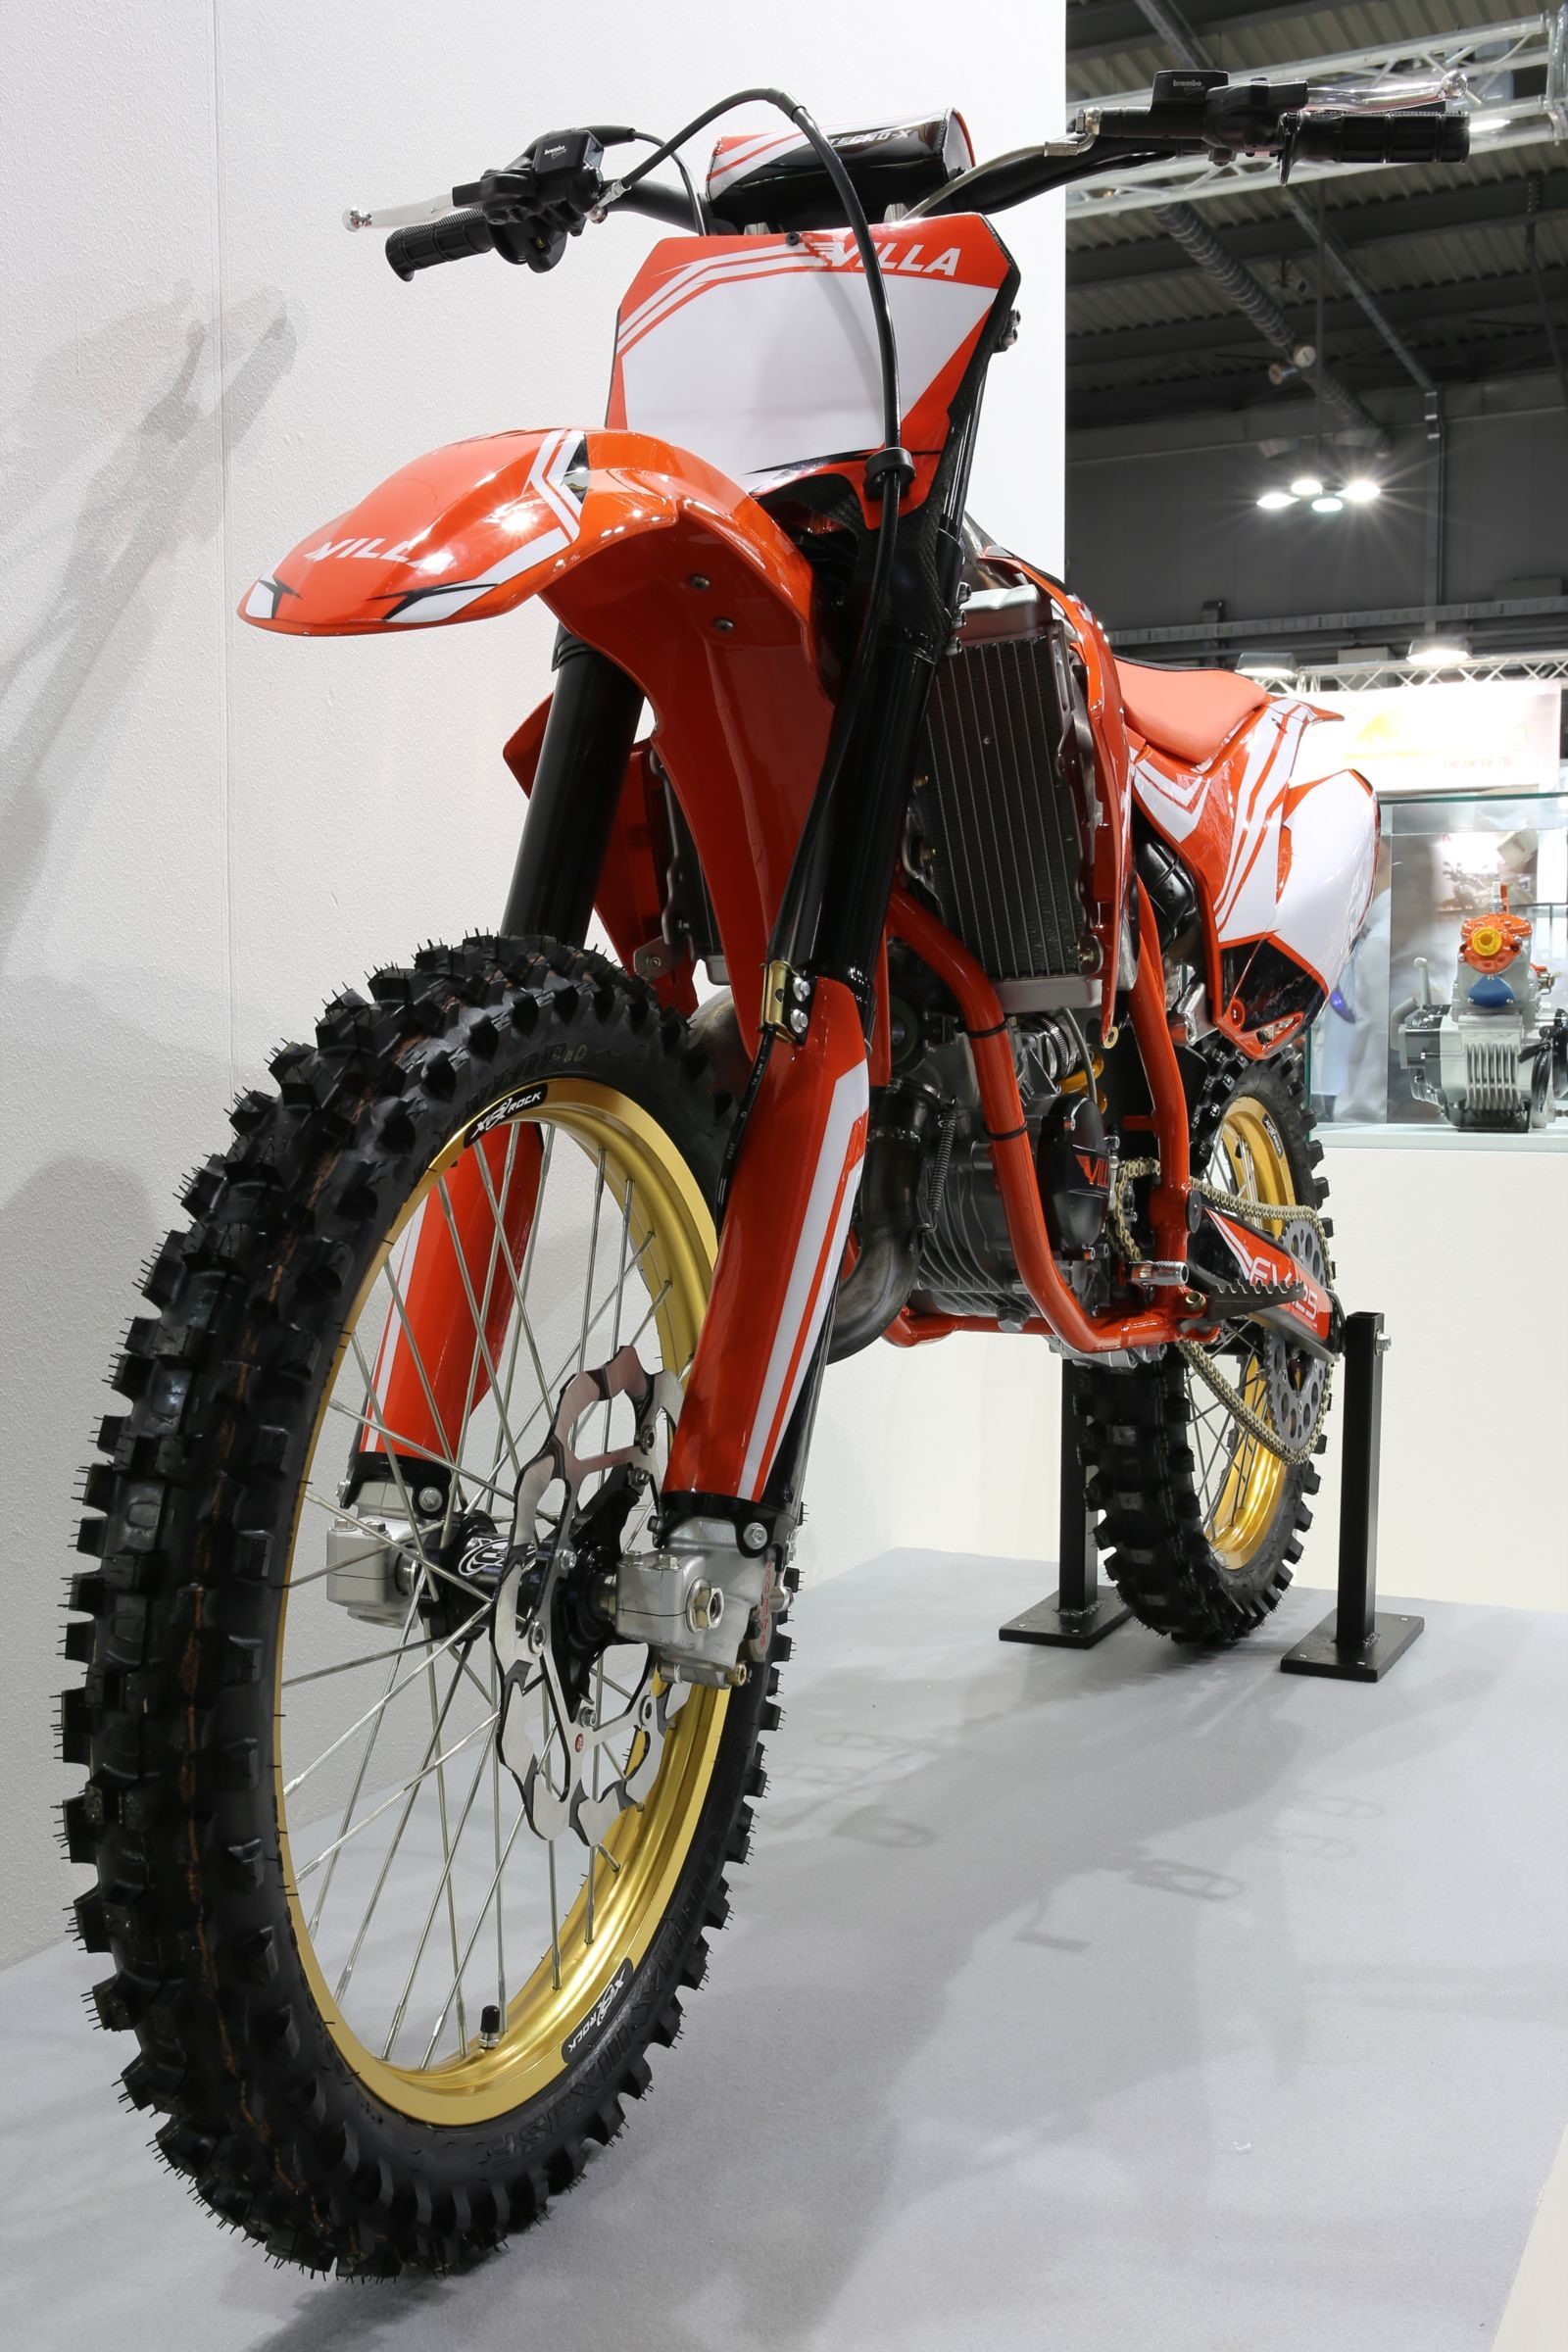 FS 125 front